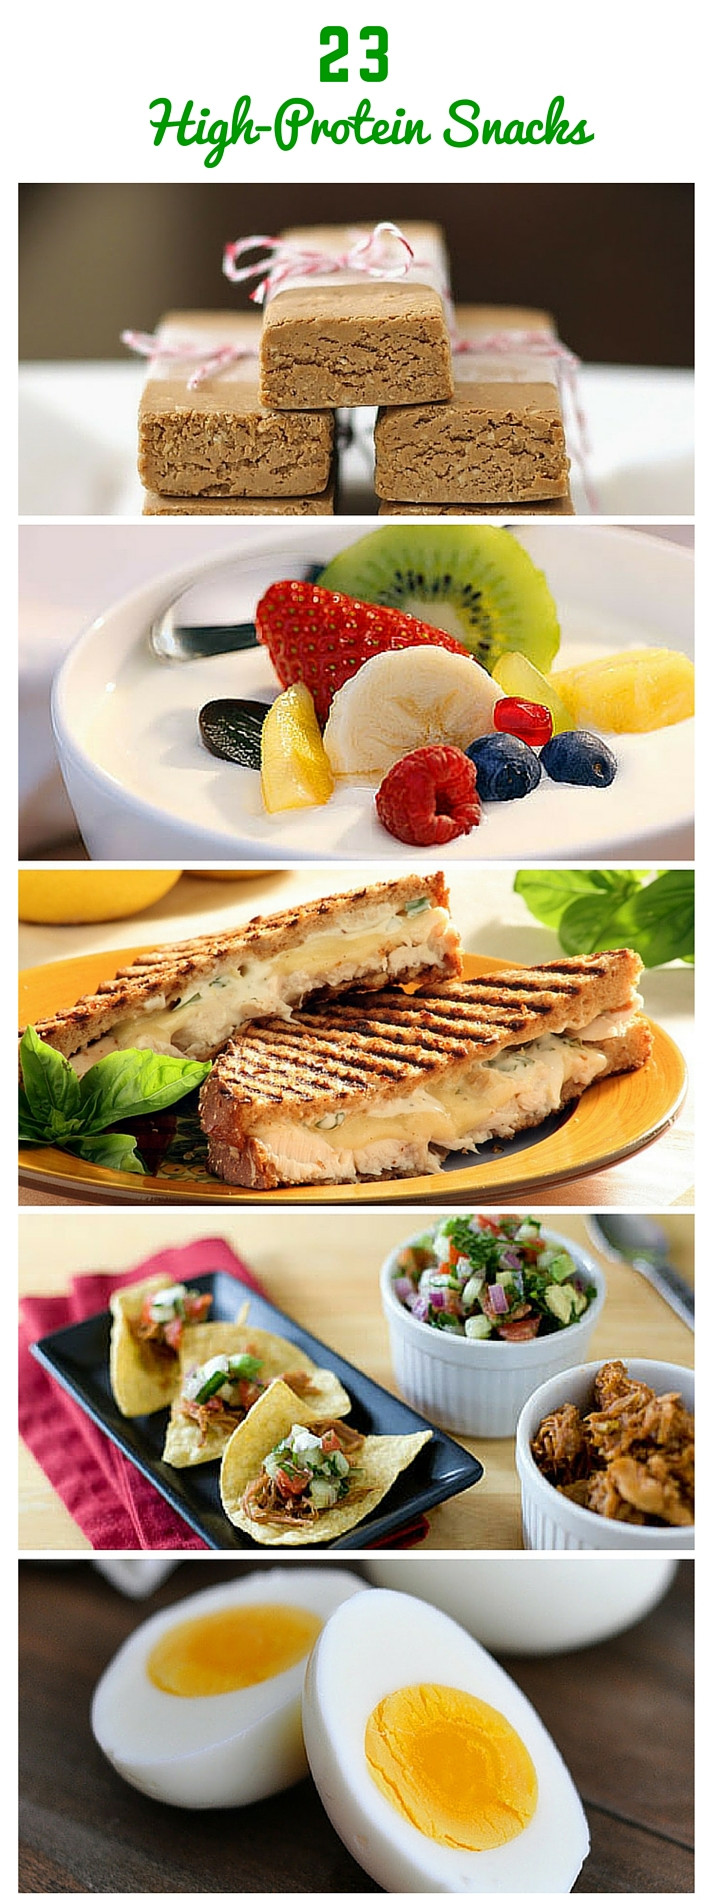 Healthy Protein Snacks  23 Healthy and Portable High Protein Snacks Daily Fit Hit